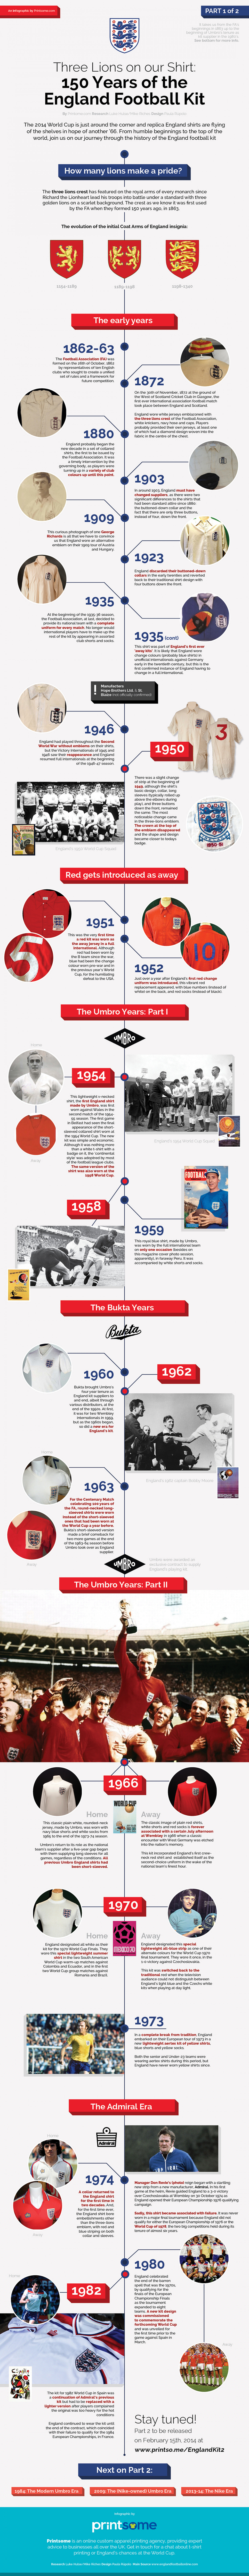 150 Years of the England Football Kit Part 1 Infographic